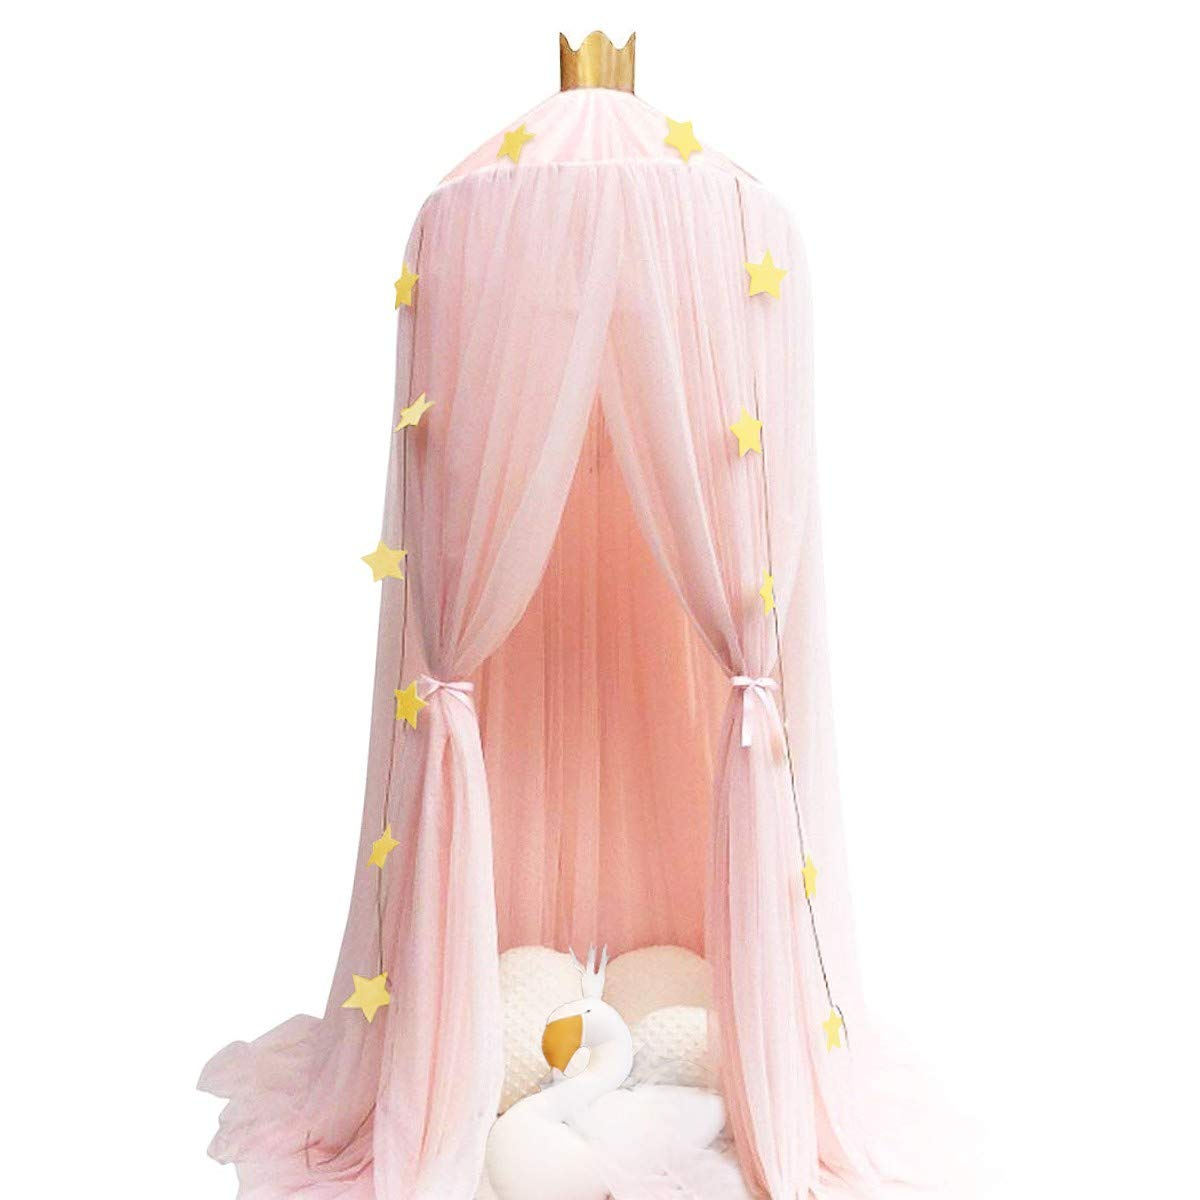 Dix-Rainbow Princess Bed Canopy Mosquito Net for Kids Baby Bed, Round Dome Kids Indoor Outdoor Castle Play Tent Hanging House Decoration Reading Nook Cotton Canvas Coral Pink (Pink Mesh)